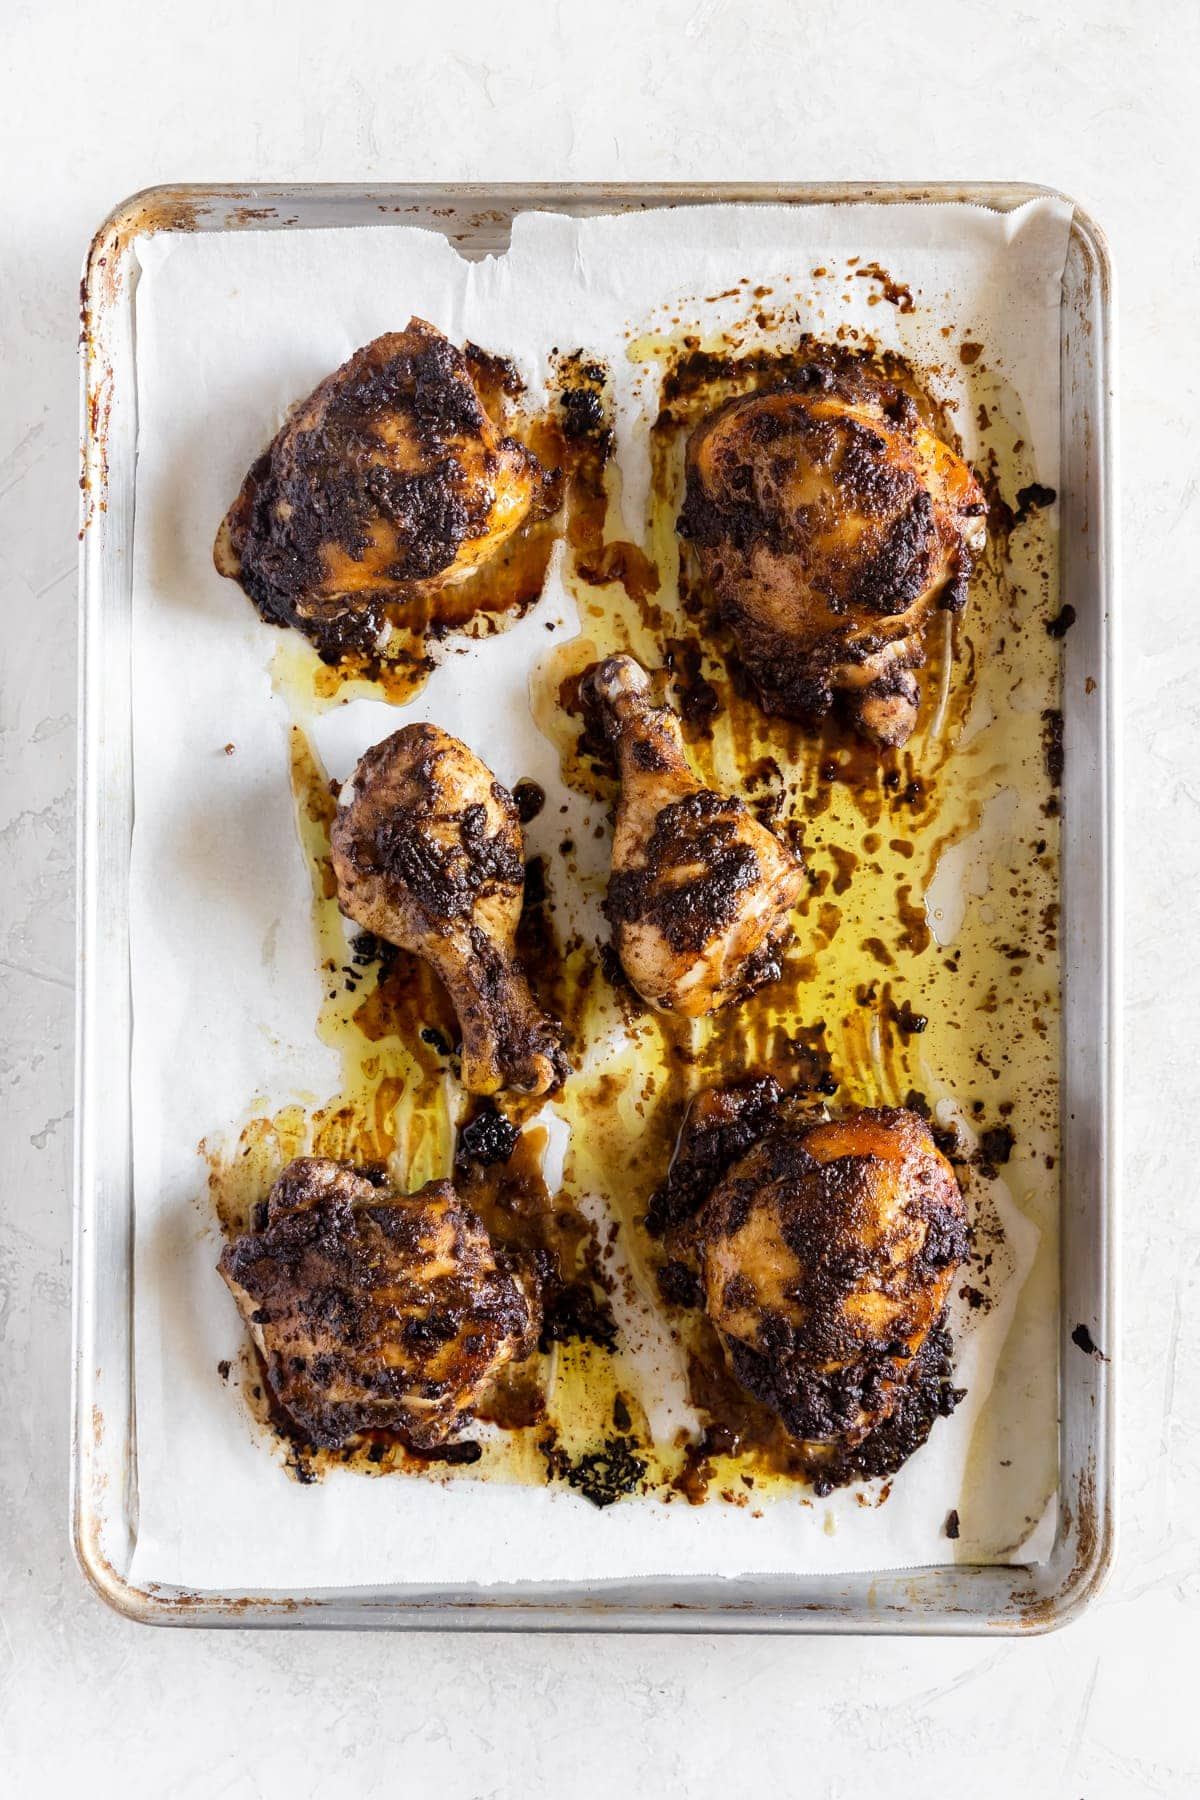 chicken cooked with jerk marinade on a baking sheet right out of the oven